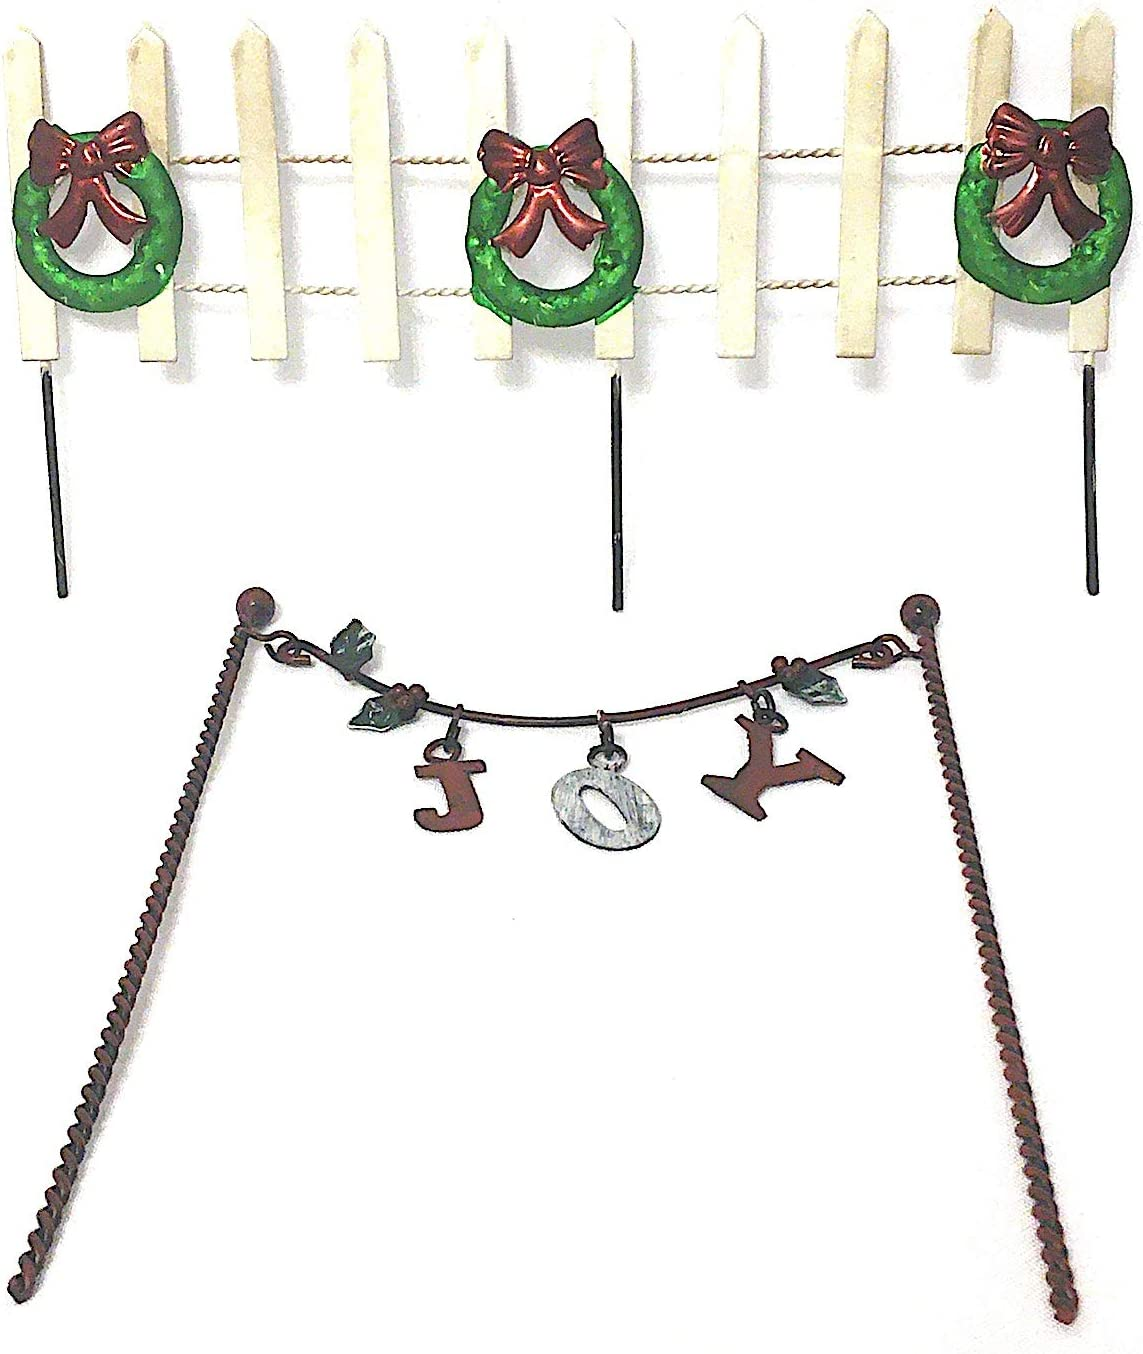 Miniature Fairy Garden, Doll House or Home Decor Christmas Decorations: Metal Joy Banner and Fence with Wreaths - Perfect for Indoors or Out